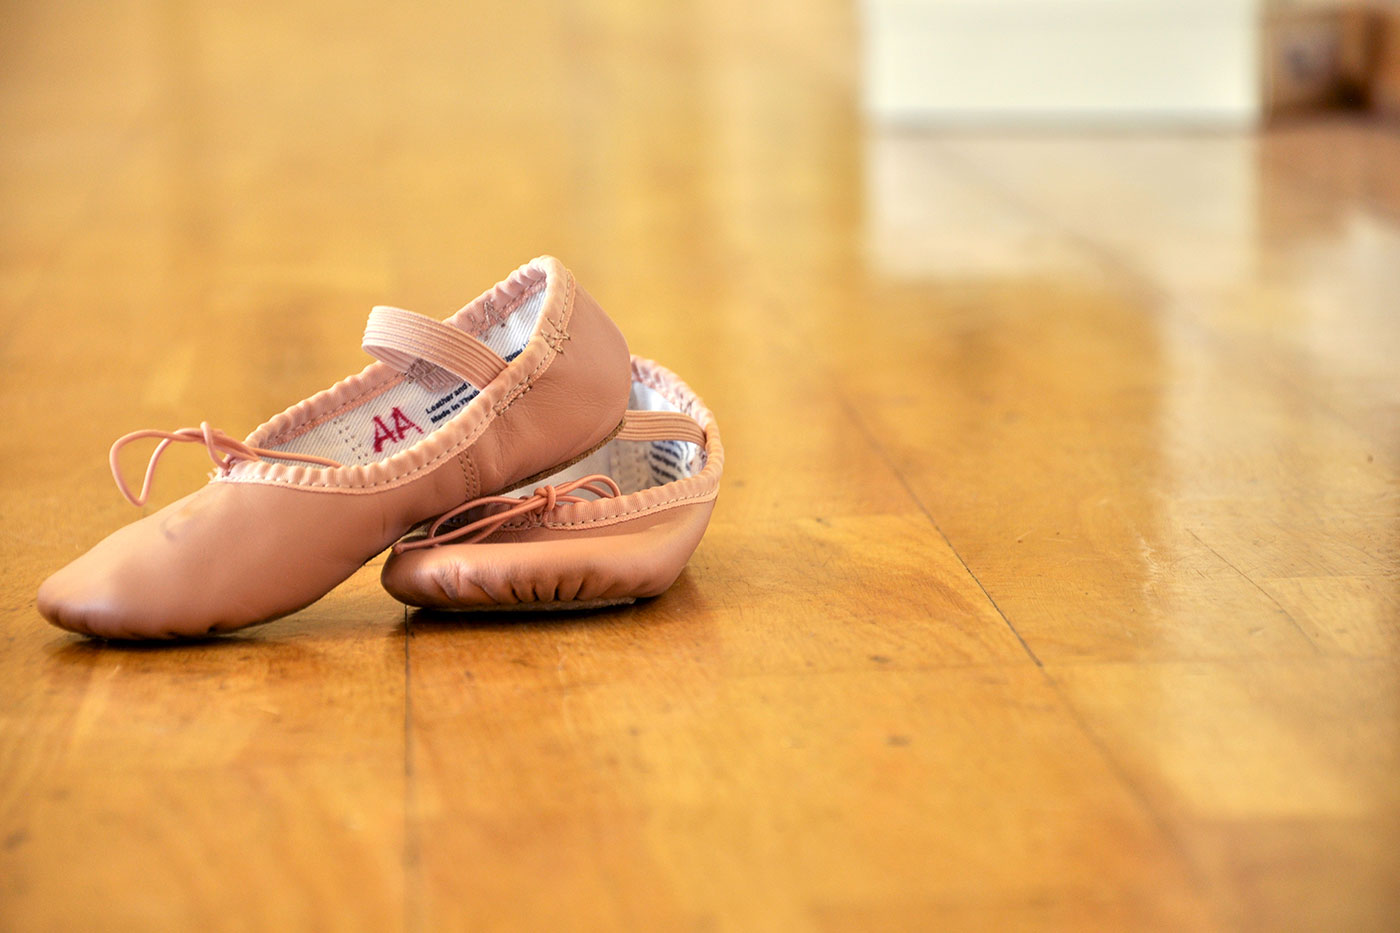 A pair of dance slippers set up on the dance floor.